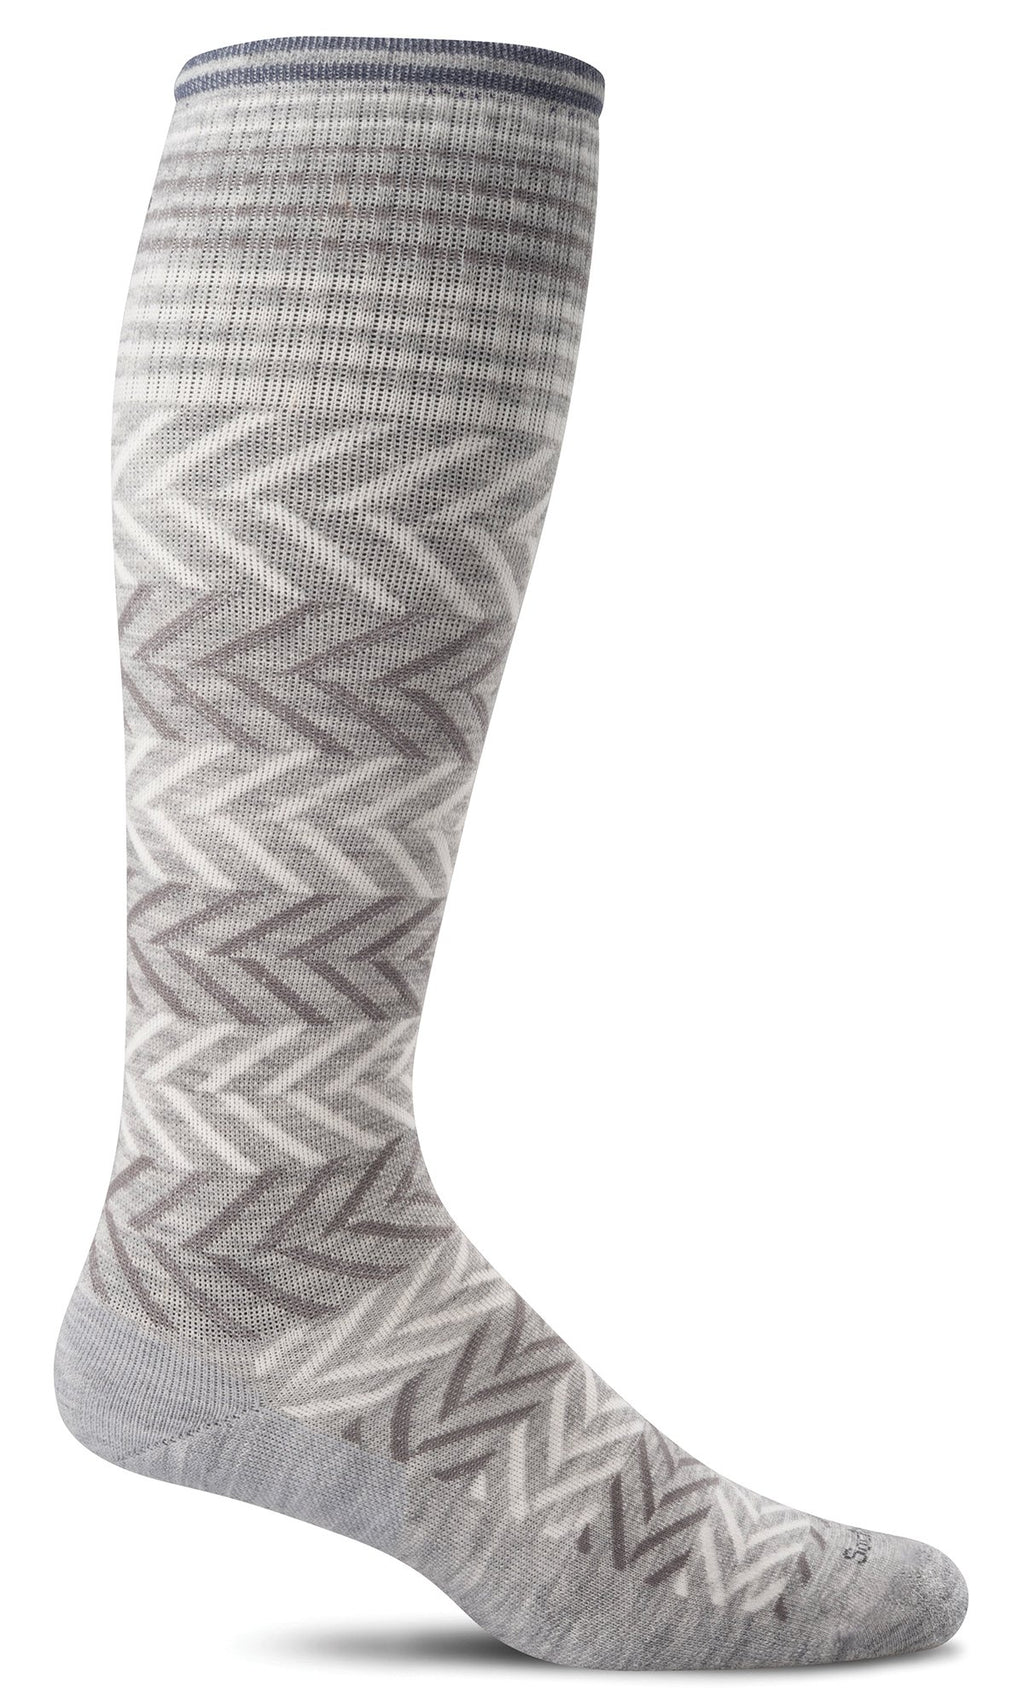 Sockwell Socks (Official Site) - 20% Off With Newsletter Sign Up!